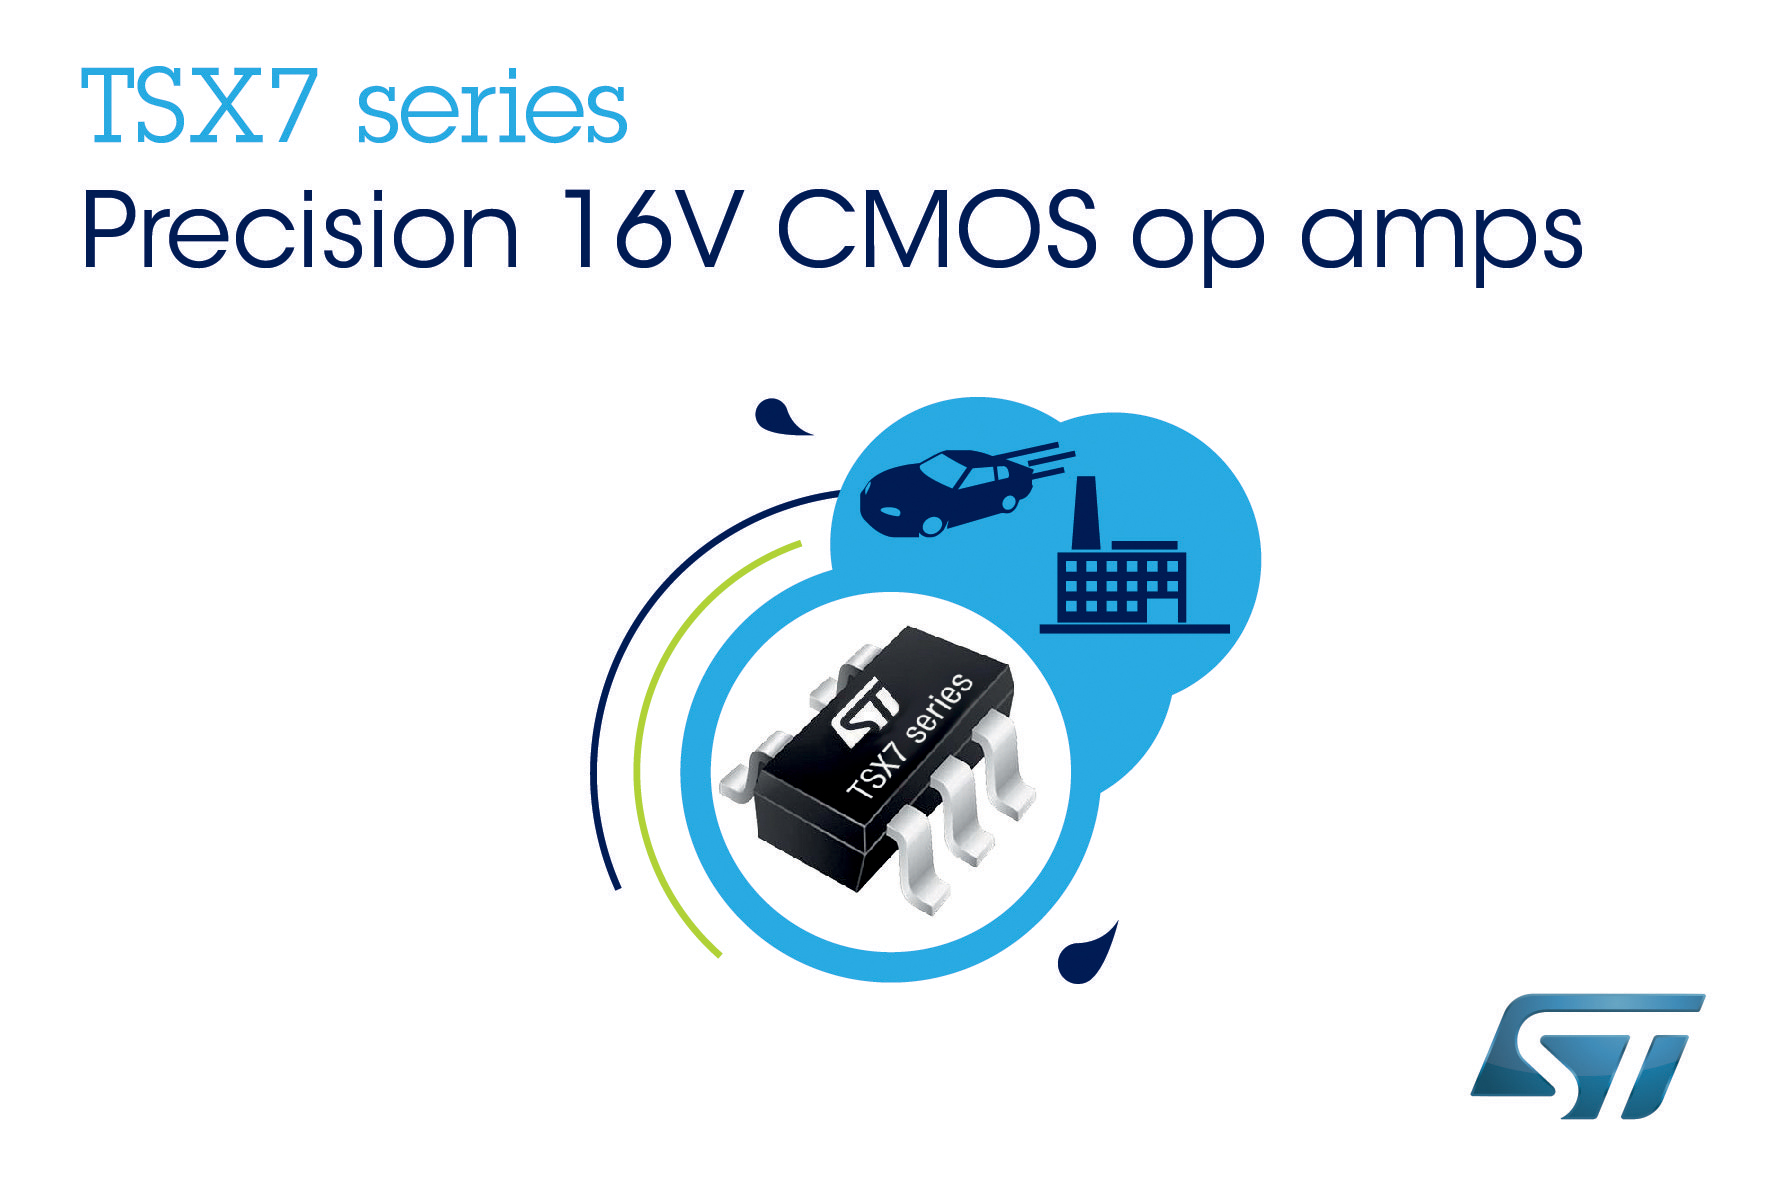 Precision 16v Op Amps From Stmicroelectronics Eliminate Post Instrumentation Amplifier With Cmrr Calibration Assembly Trimming